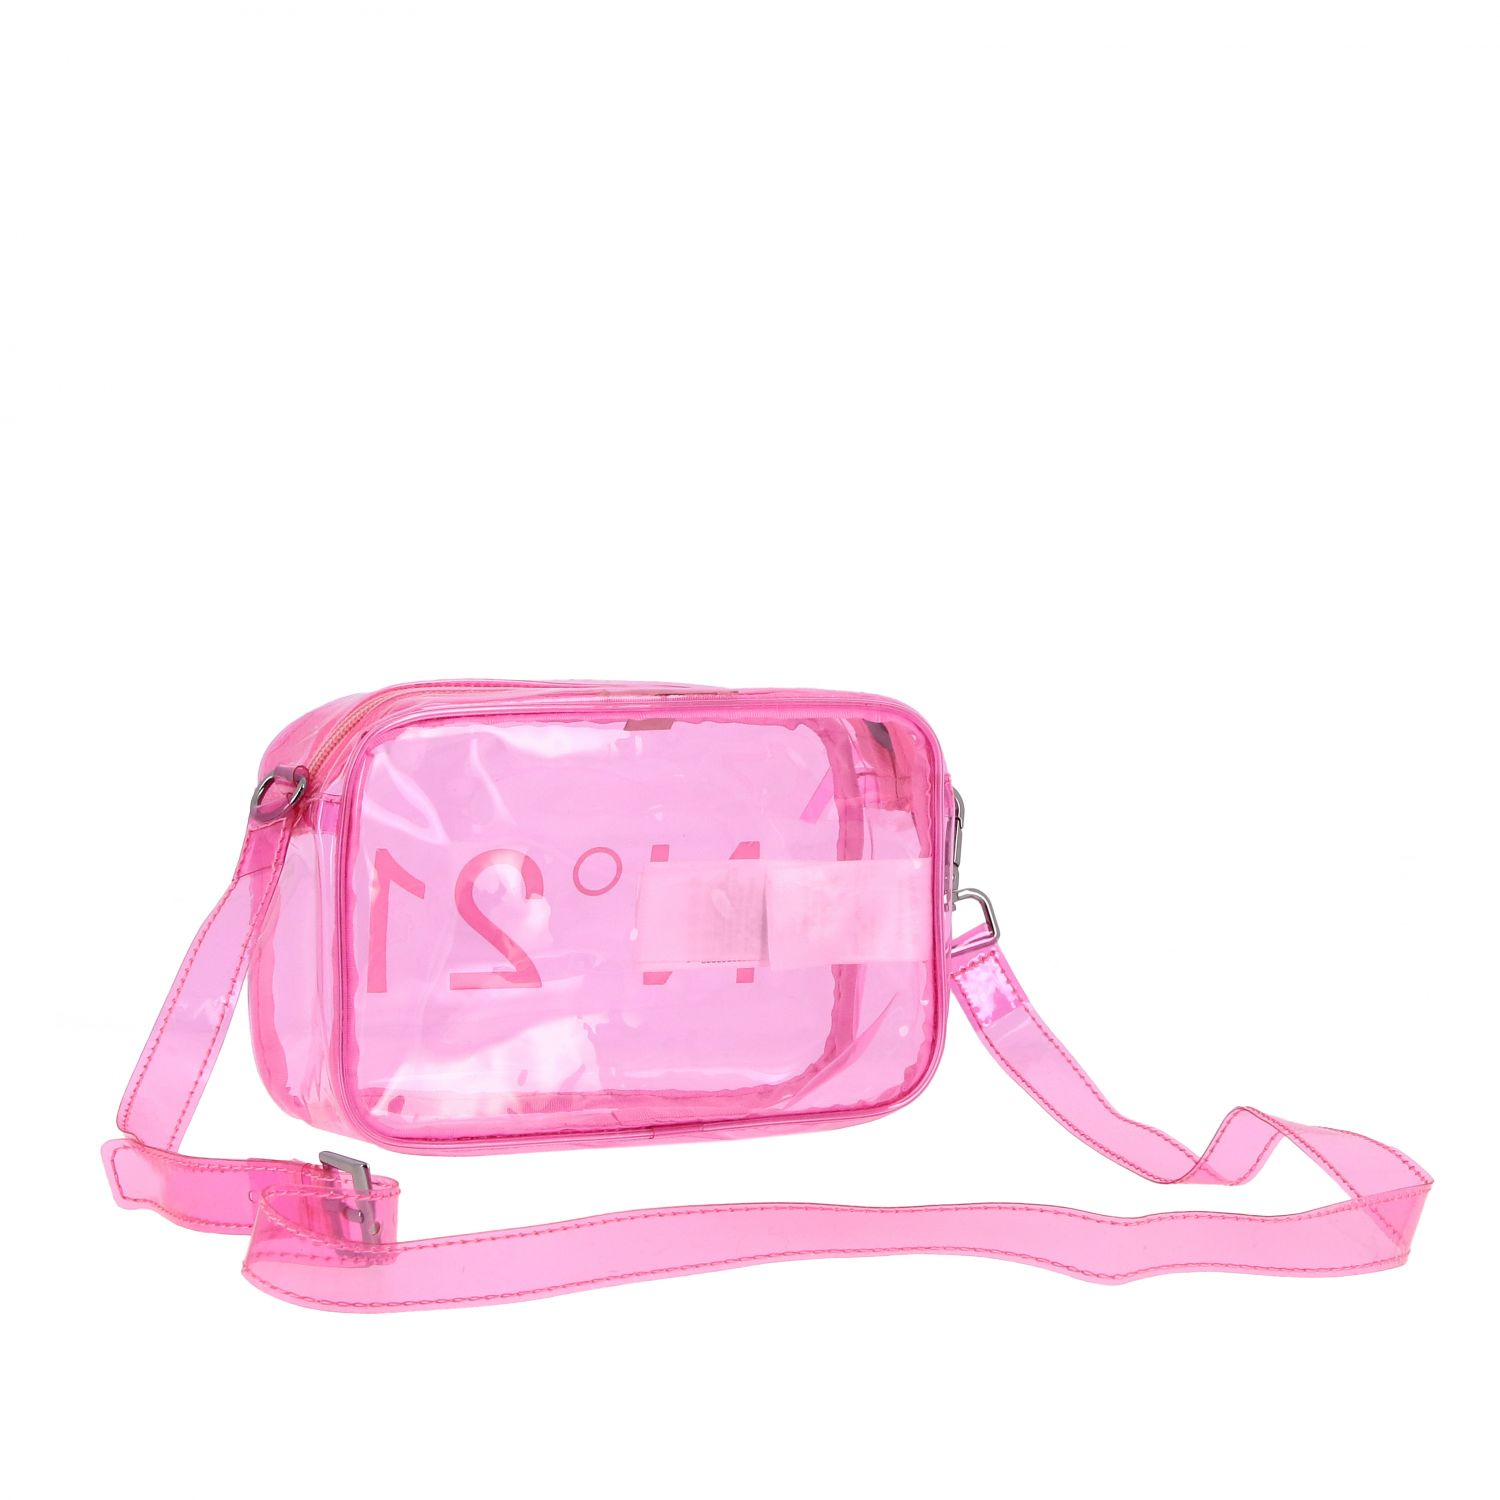 N ° 21 shoulder bag in pvc pink 2